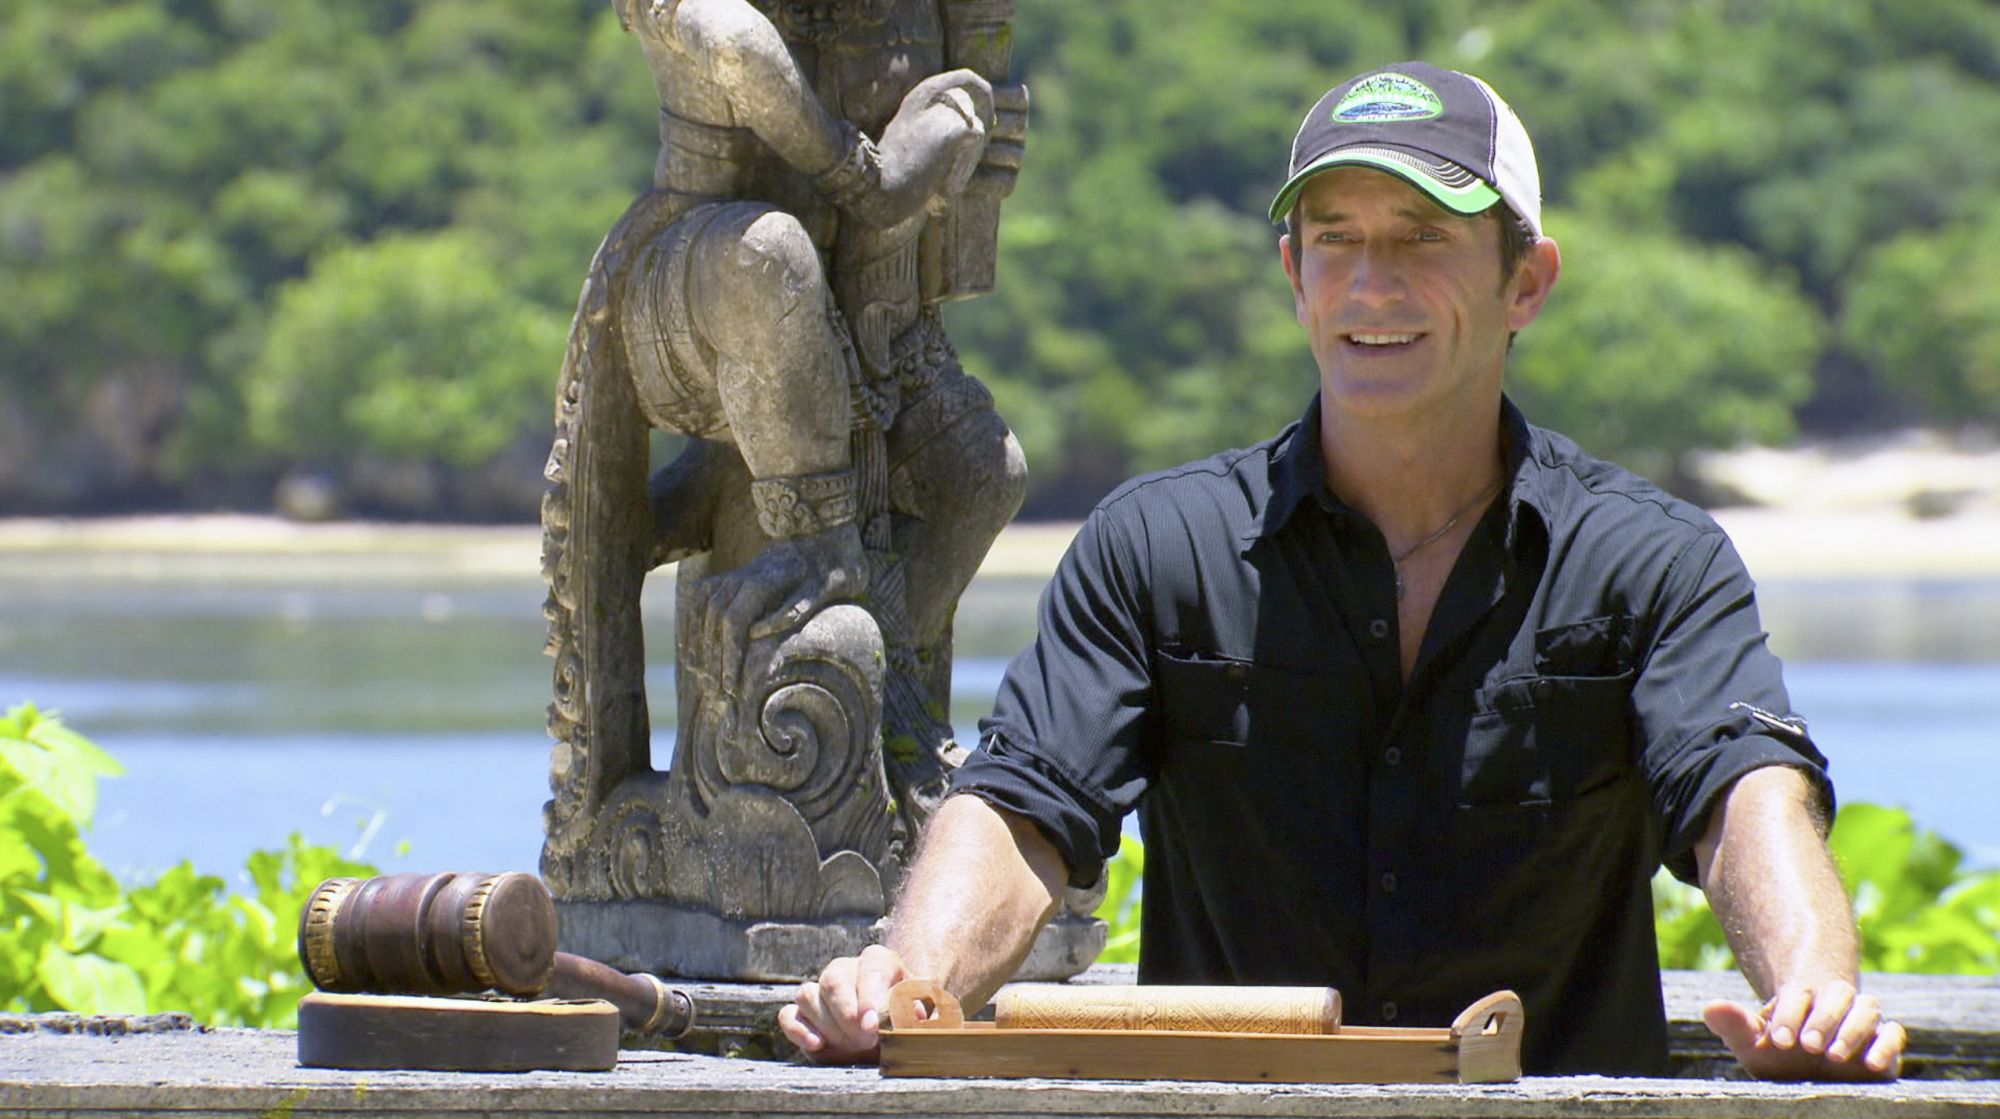 Jeff Probst in Season 28 Episode 10